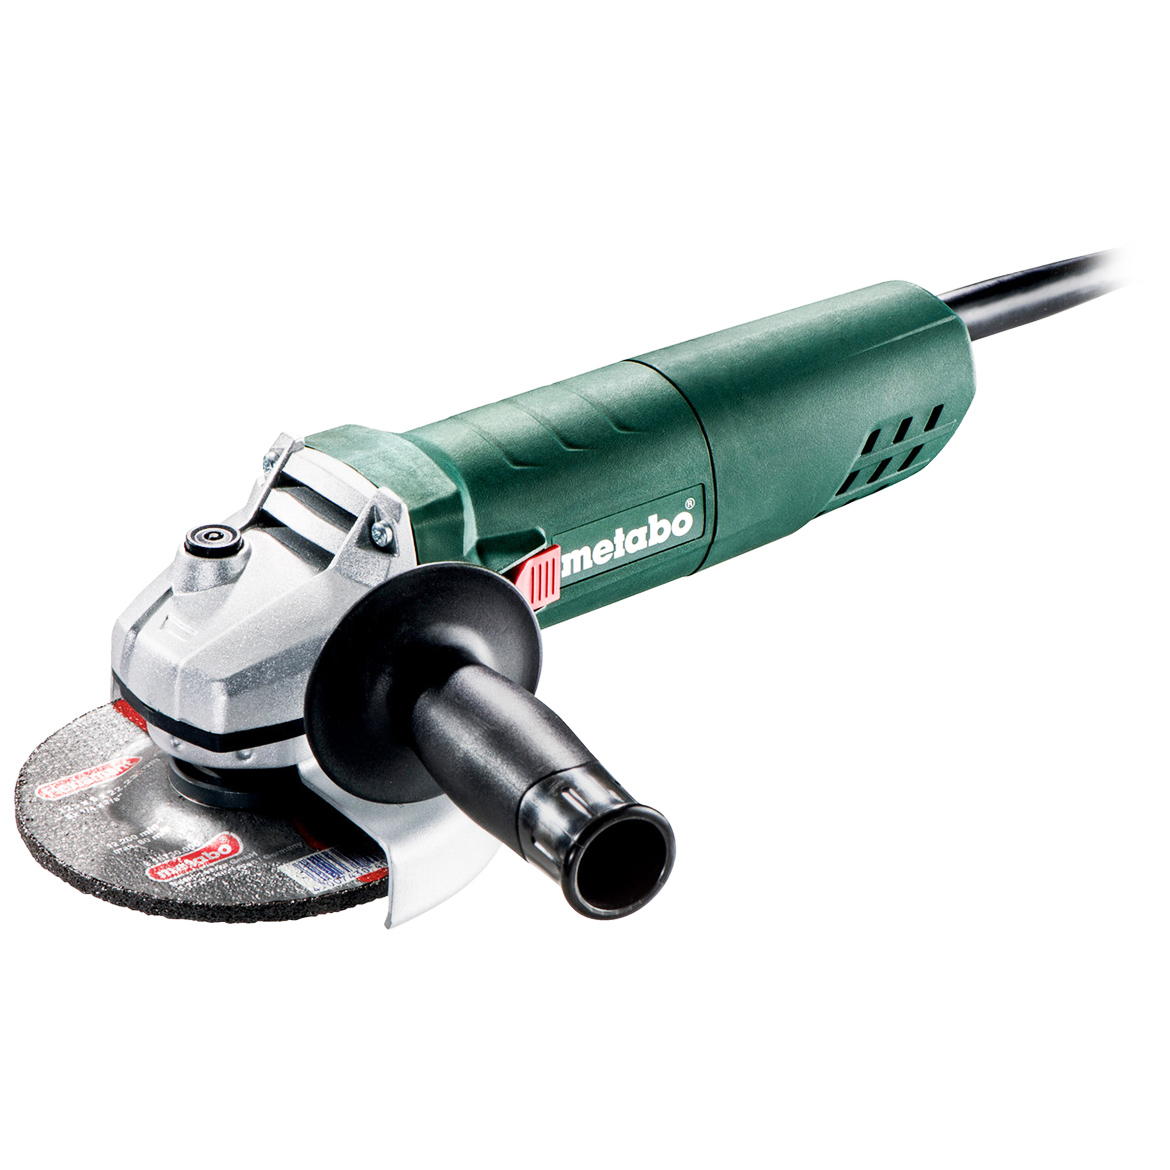 Metabo 601233420 4-1/2 - 5-Inch 8.0-Amp 10,000 RPM Powerful Angle Grinder